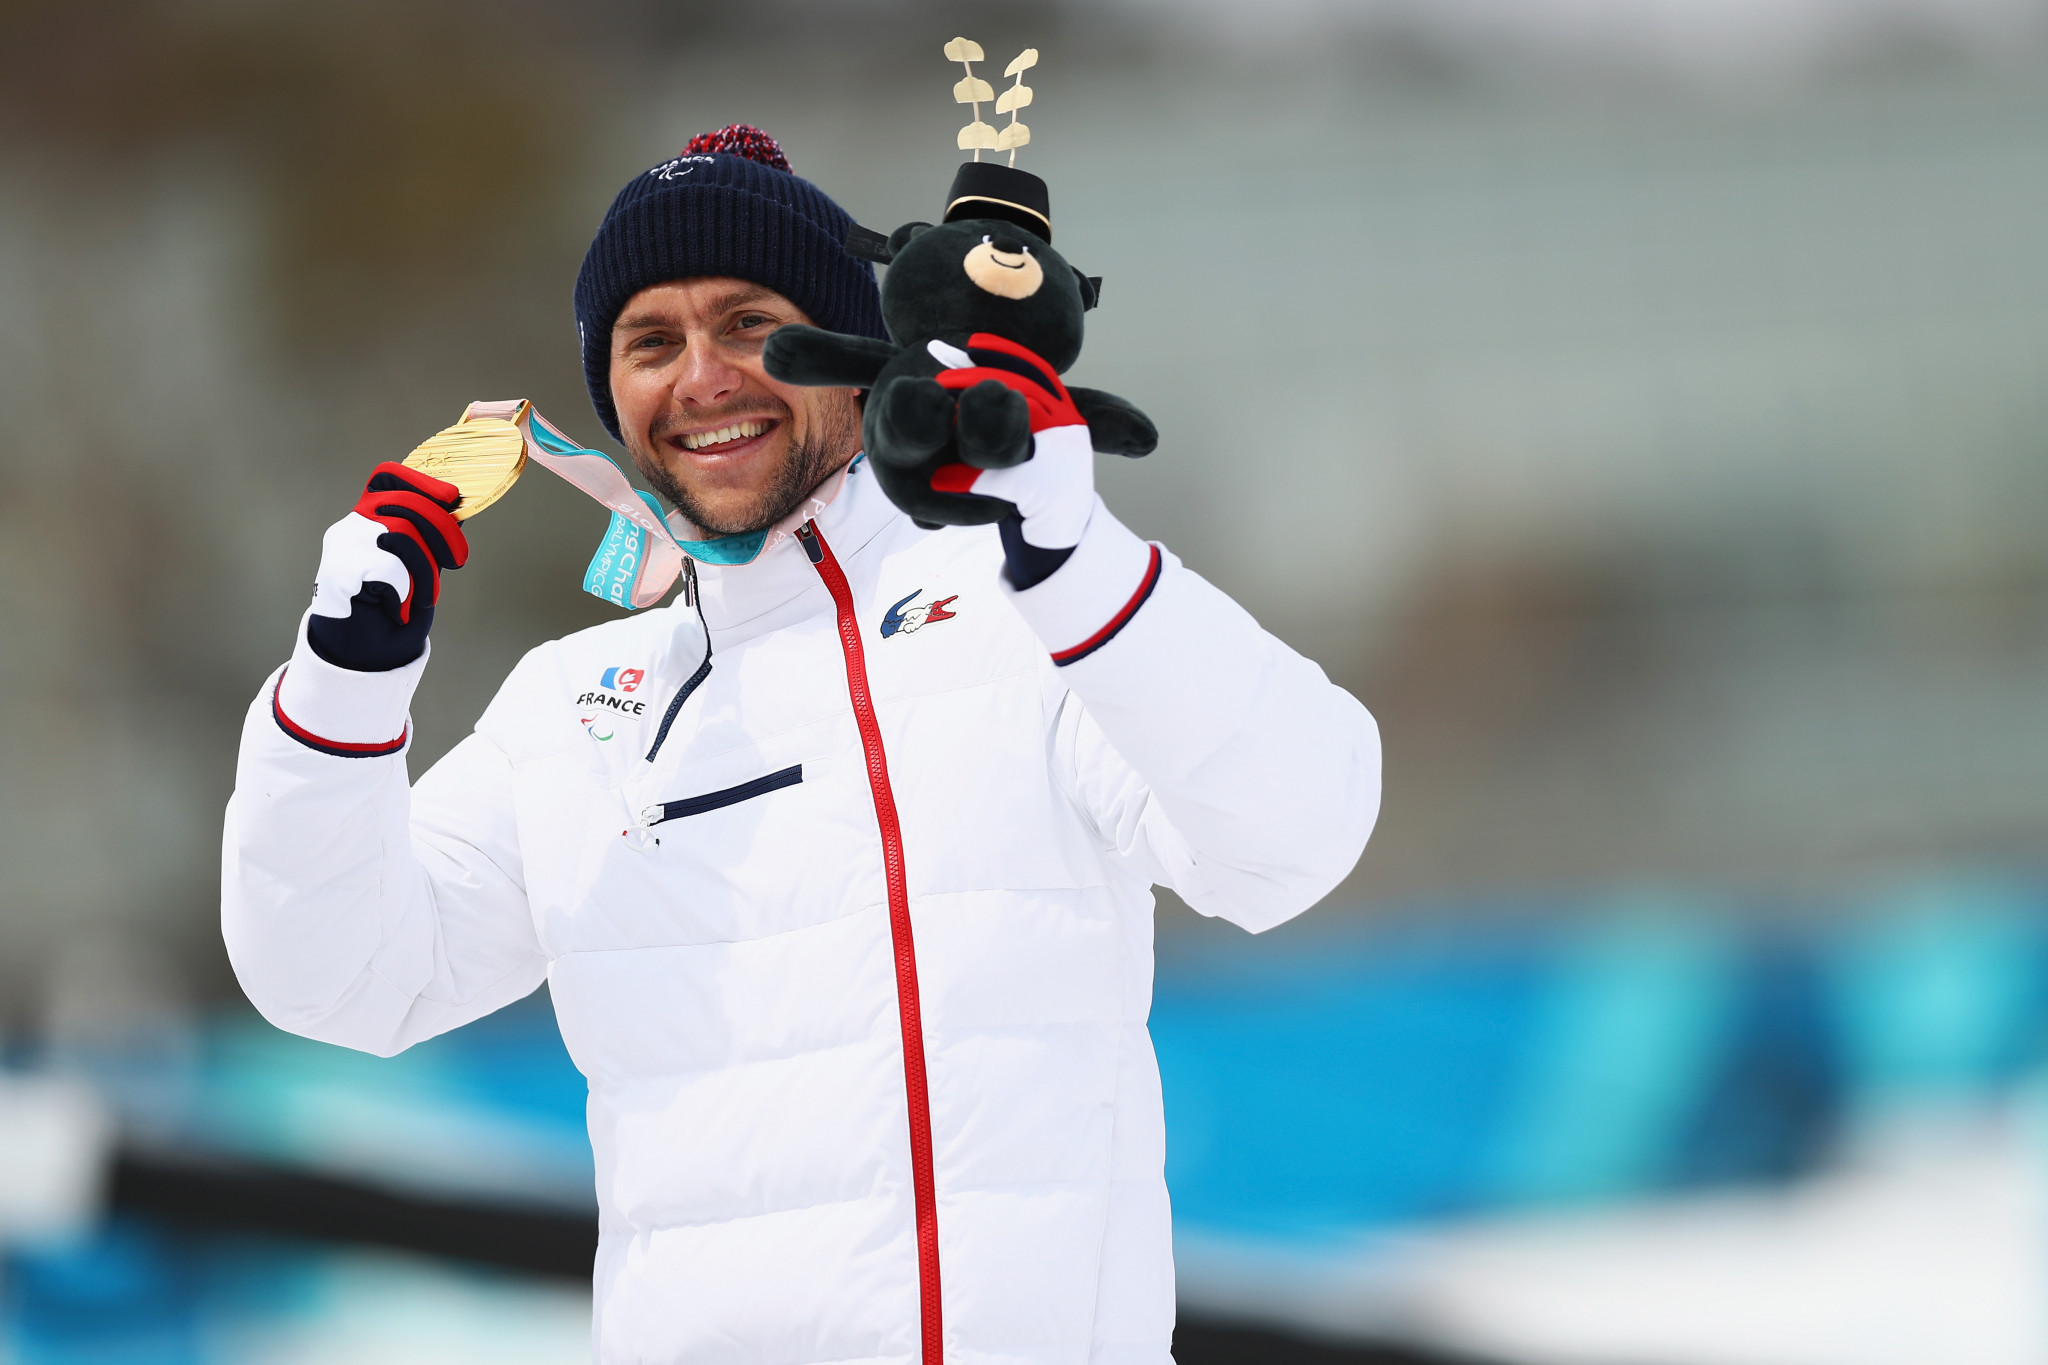 Benjamin Daviet won his fourth gold medal today at the World Para Nordic Skiing Championships ©Getty Images